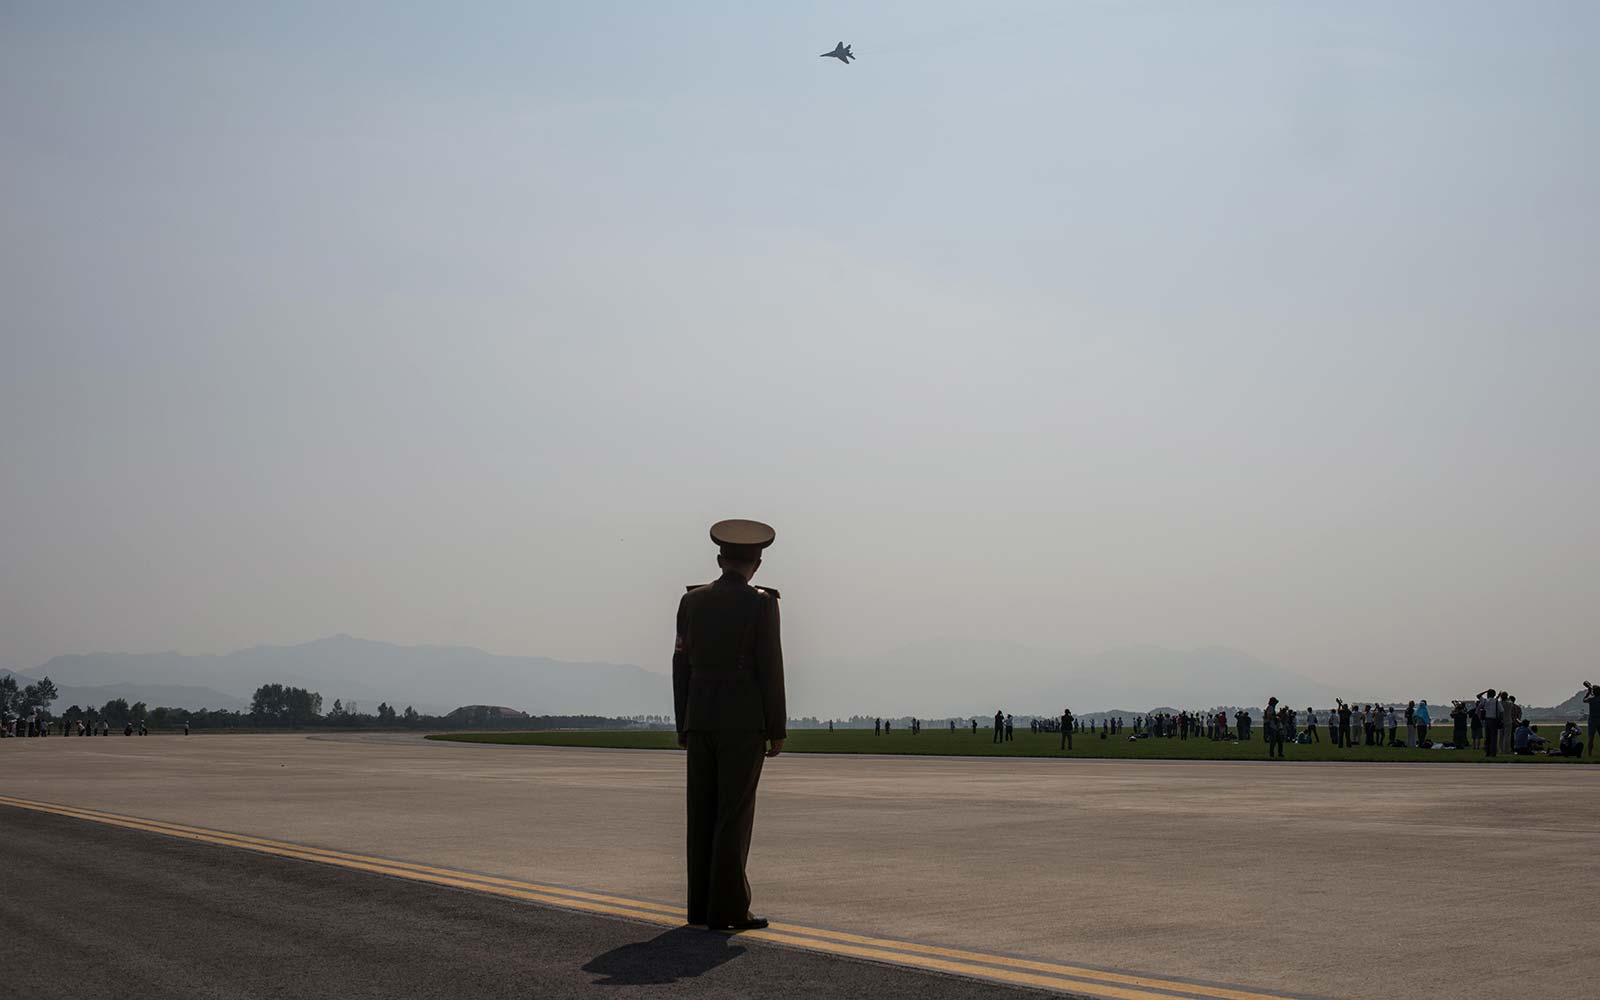 Airlines Are Rerouting Flights to Avoid North Korean Missiles